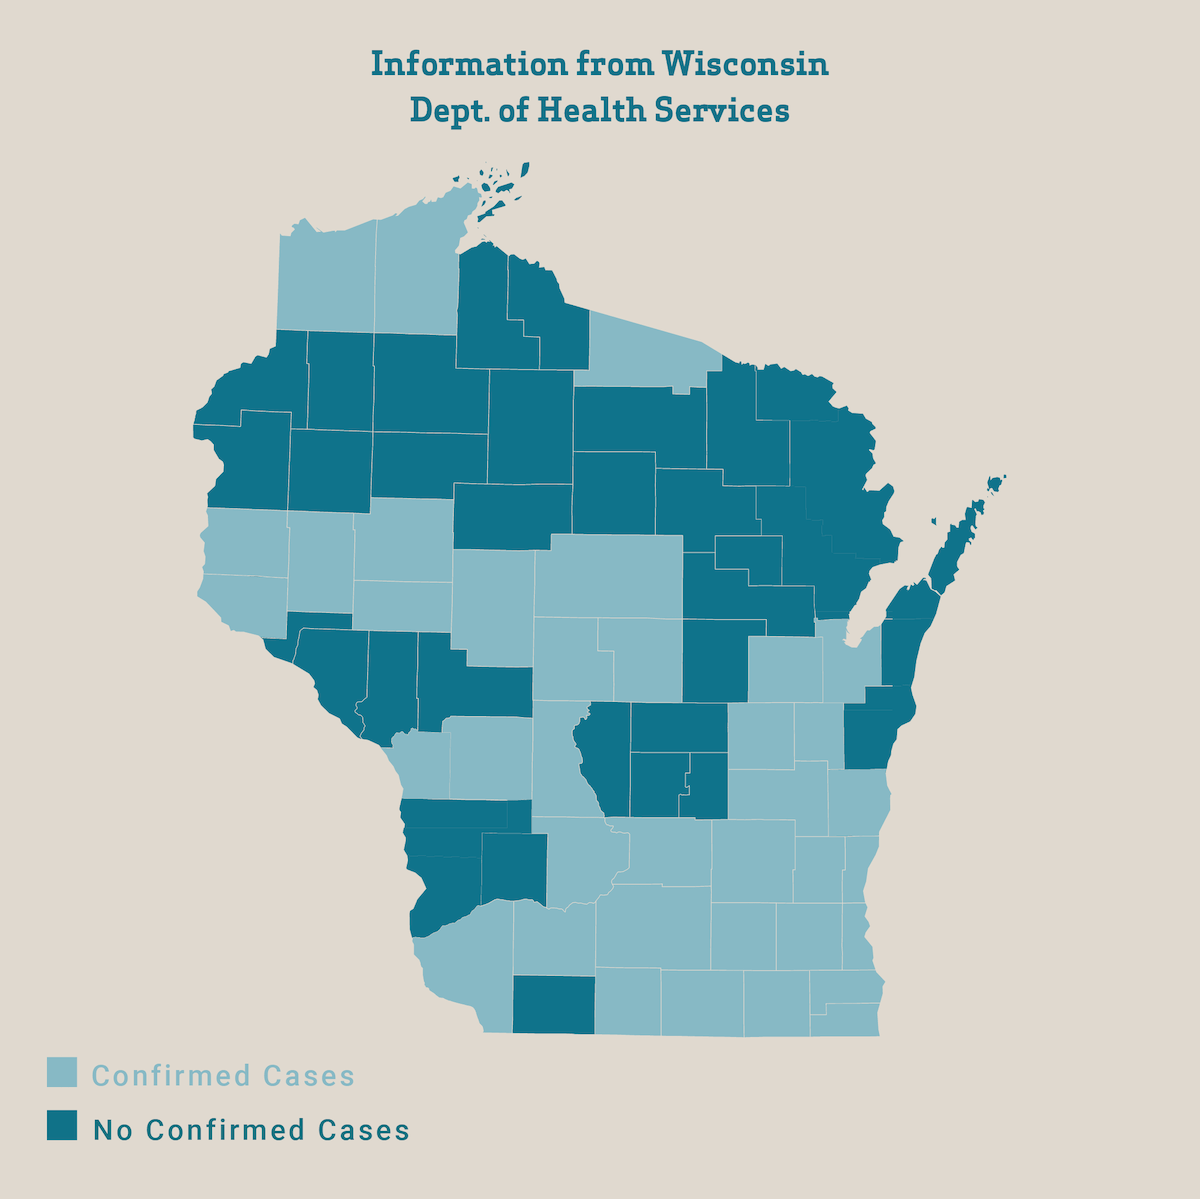 Counties in light blue have reported at least one COVID-19 case as of March 26, 2020, according to the Wisconsin Dept. of Health Services